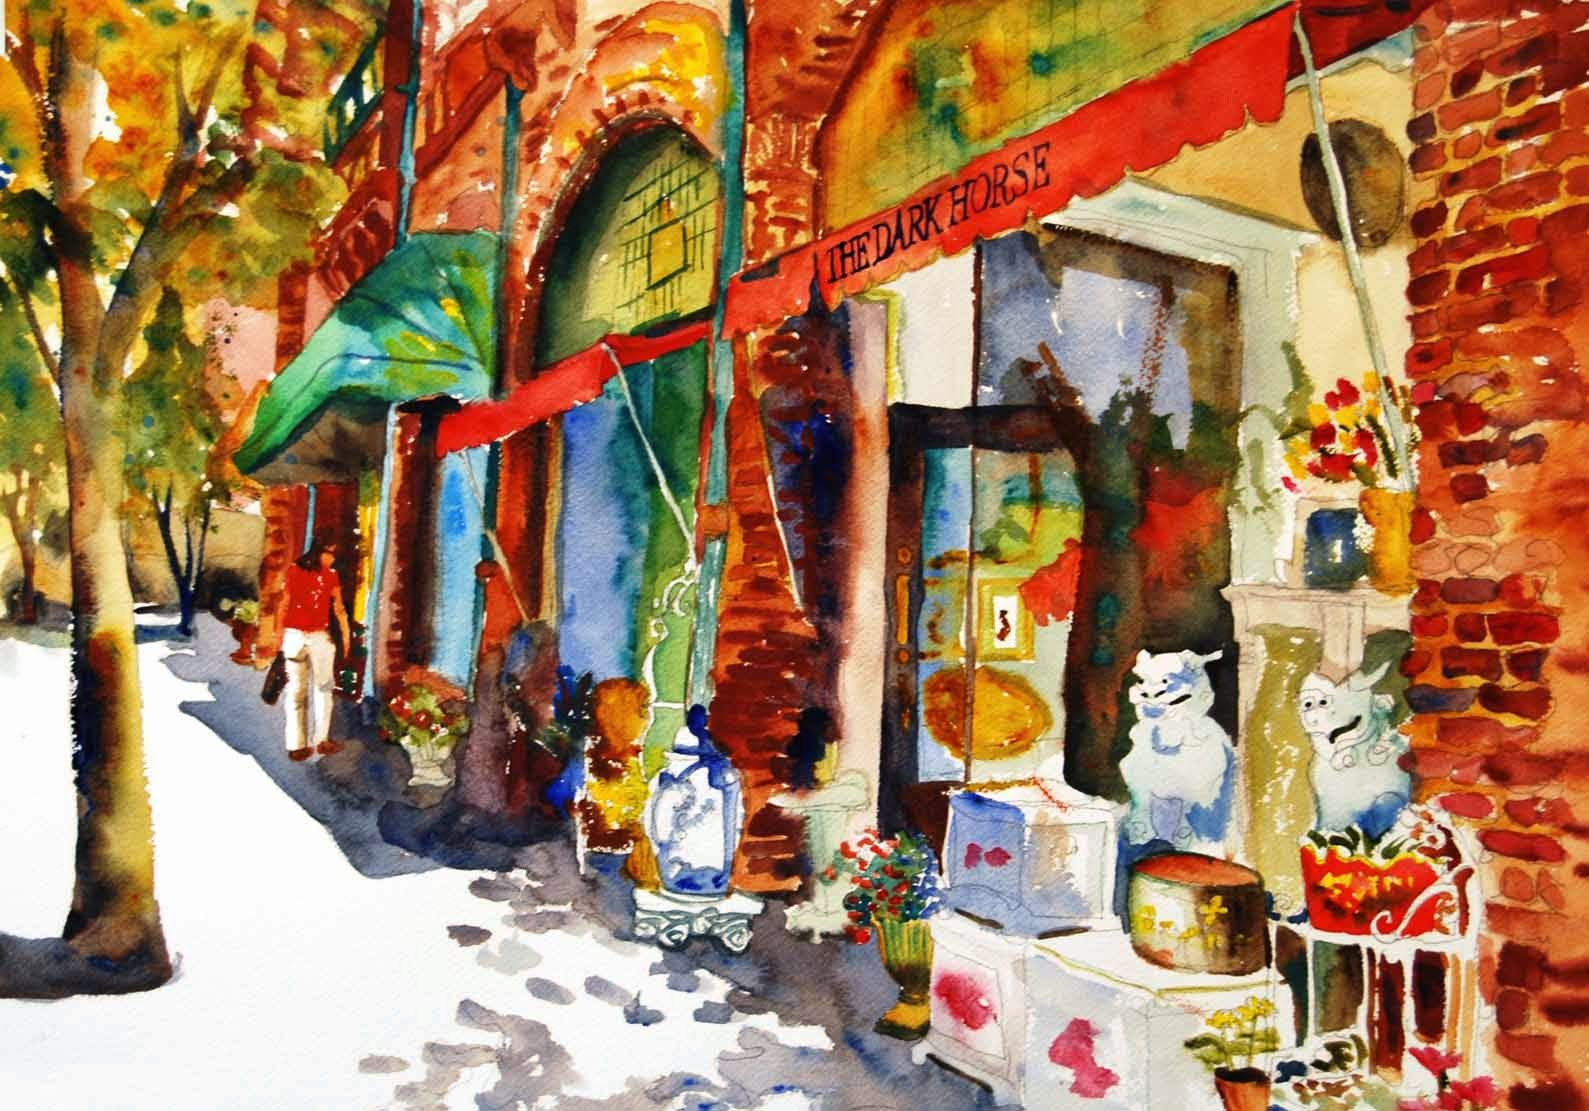 watercolor landscape by Miriam Schulman https://www.etsy.com/listing/73640595/cityscape-art-print-from-watercolor